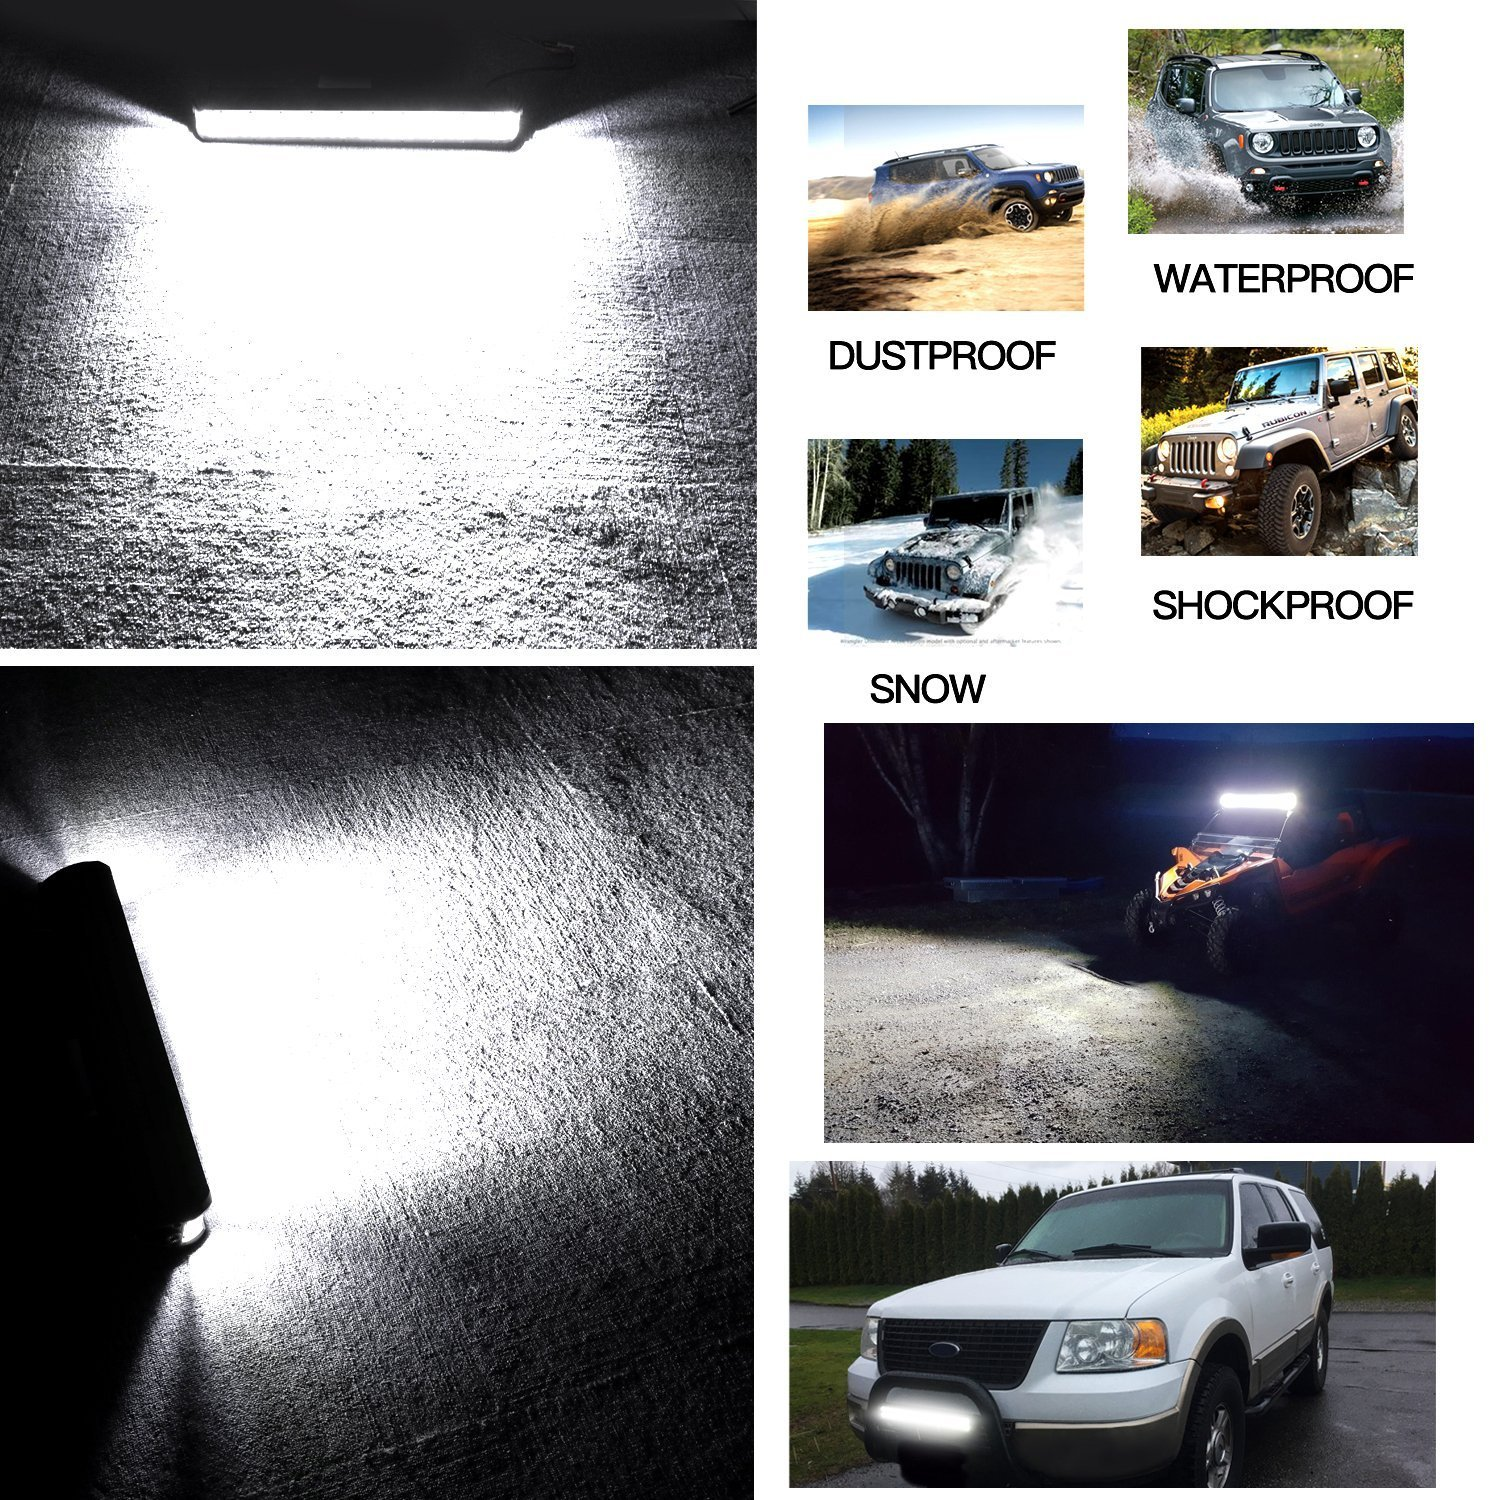 Side Shooter Led Light Bar Offroadtown 20 270w Star Wiring Diagram Off Road Lights Driving Fog Osram Work Waterproof For